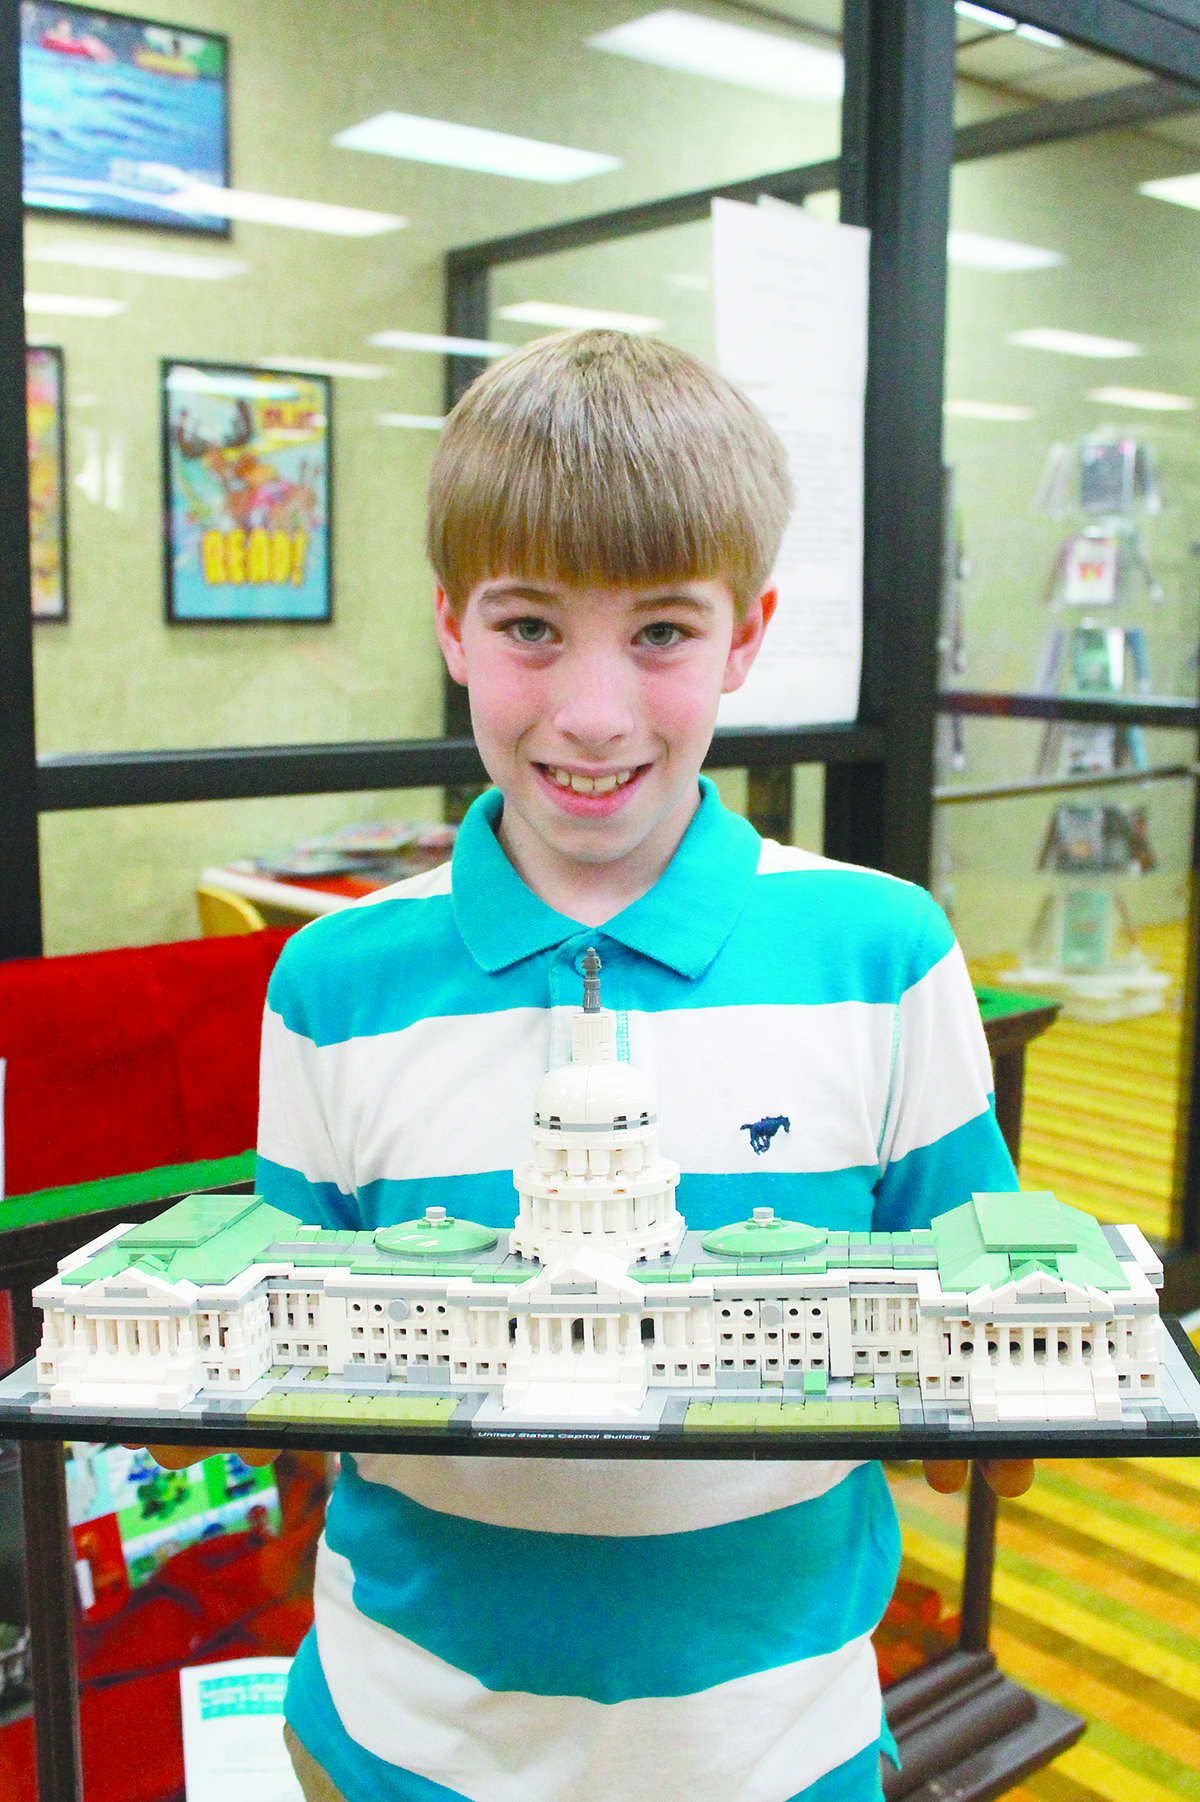 Jaylon Hill, 9, holds the LEGO model of the U.S. Capitol that he completed in four days. His collection of architectural LEGOs are on display at Jasper Public Library through the end of April.